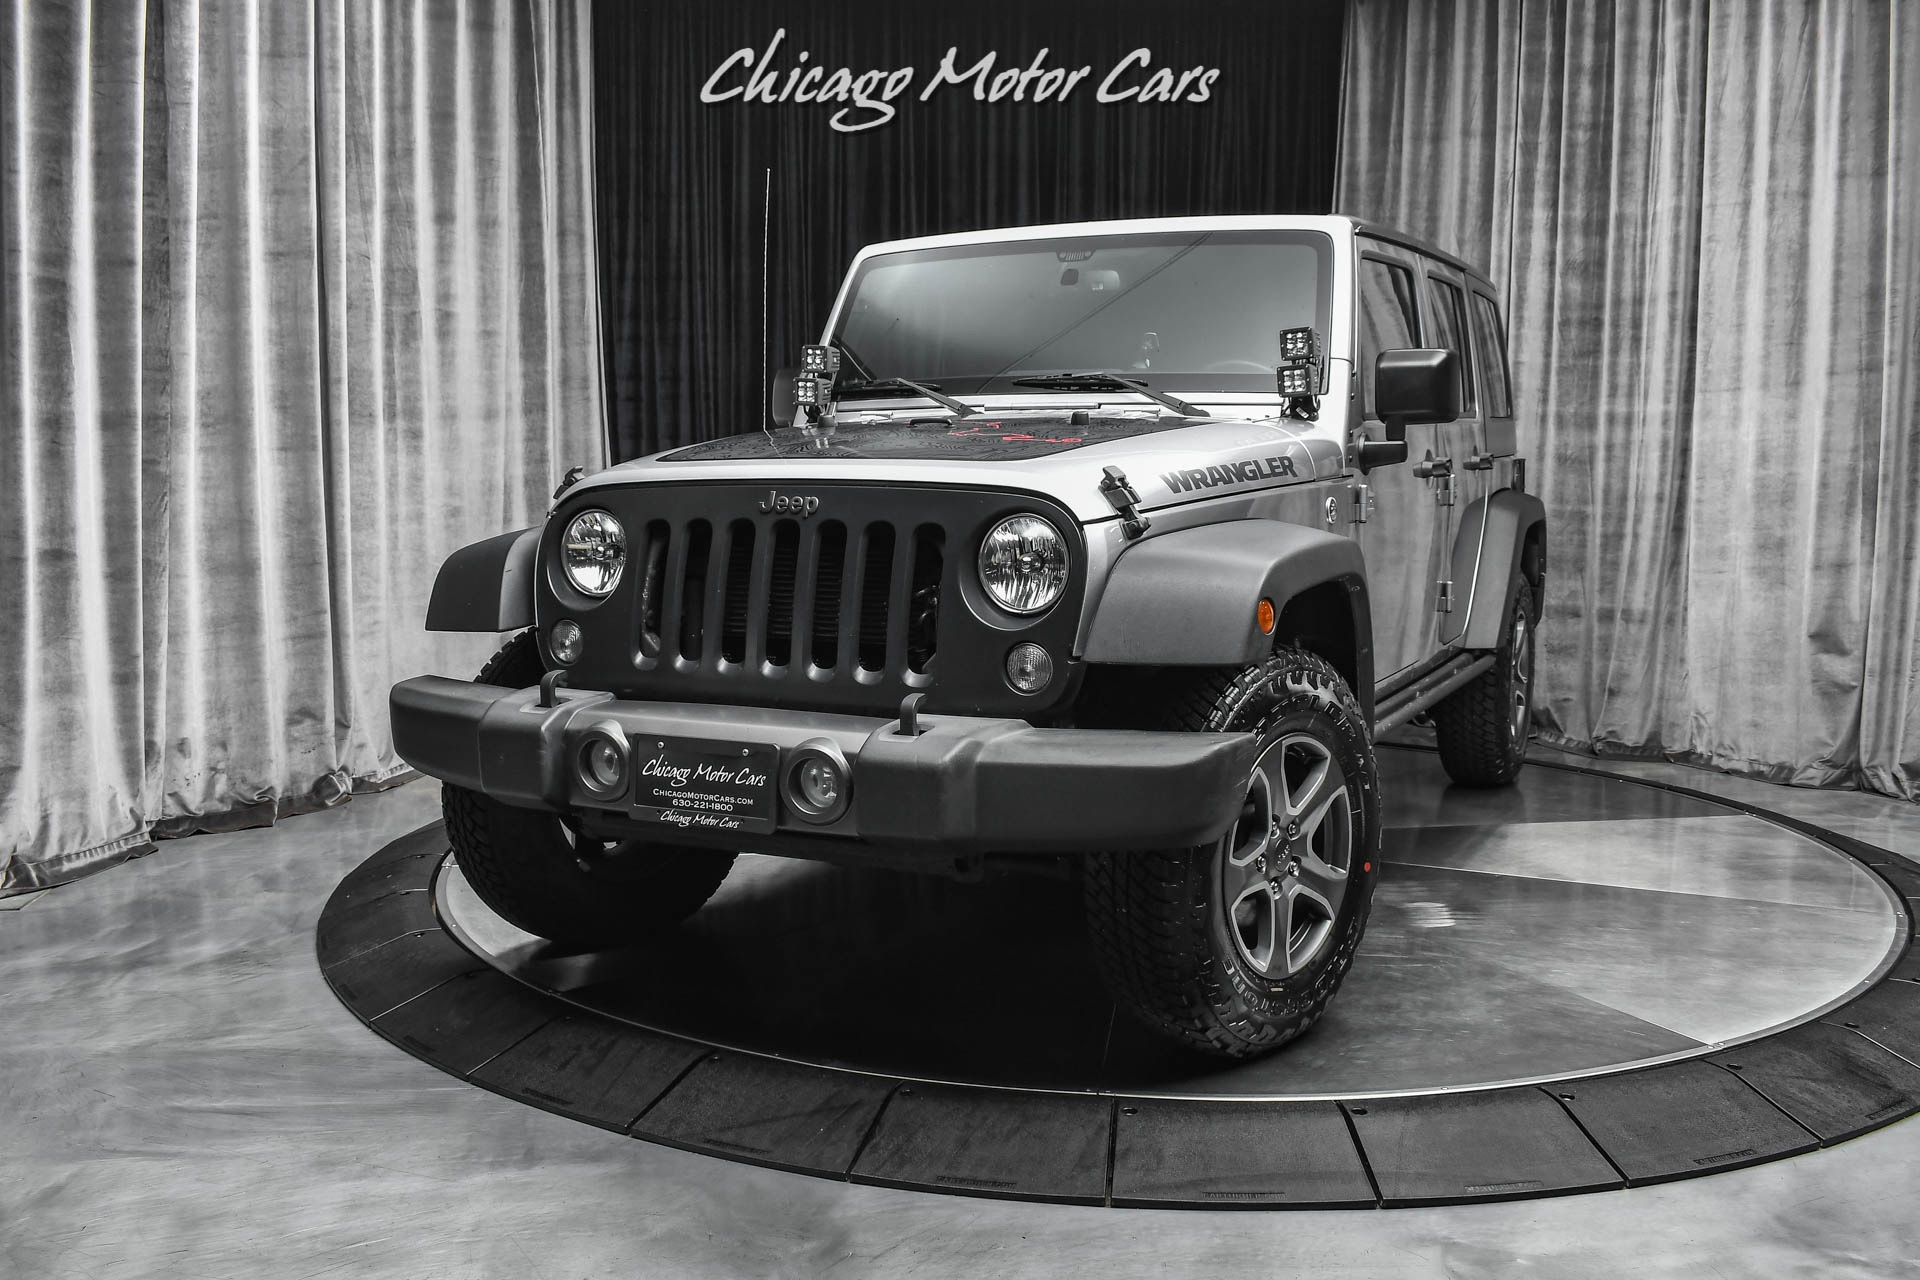 Used-2016-Jeep-Wrangler-Unlimited-Black-Bear-4WD-SERVICED-LIMITED-EDITION-LOADED-New-Wheels-and-Tires